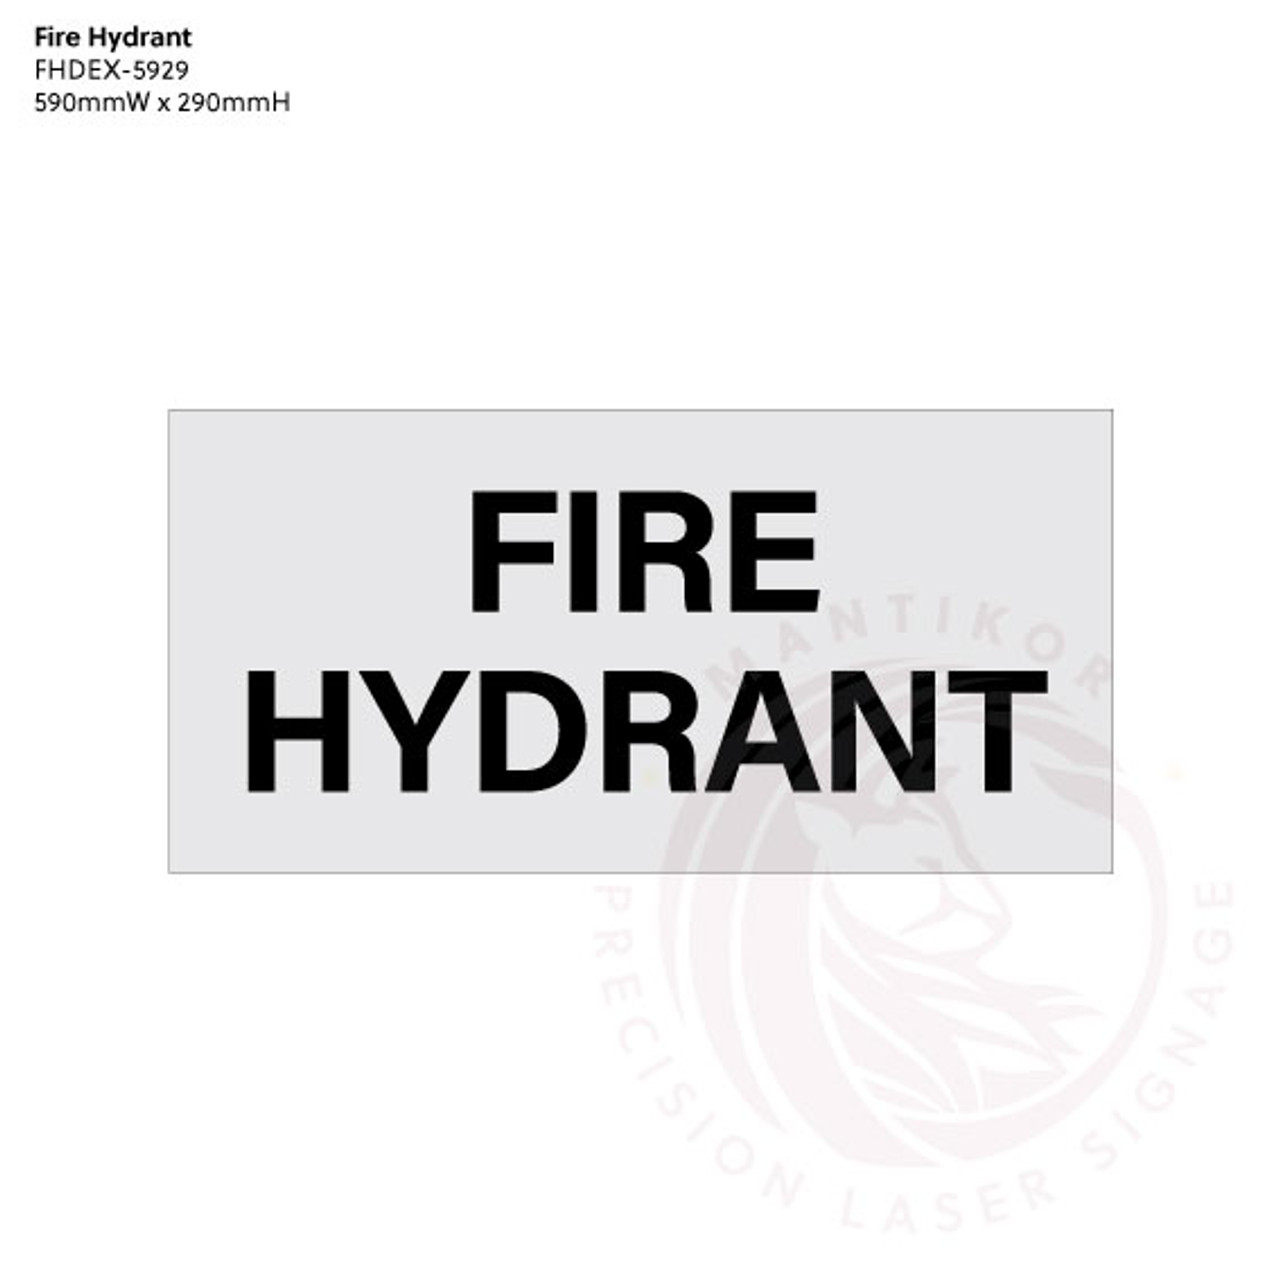 Fire Hydrant (External) - Standard statutory sign, compliant with the Building Code of Australia requirements.